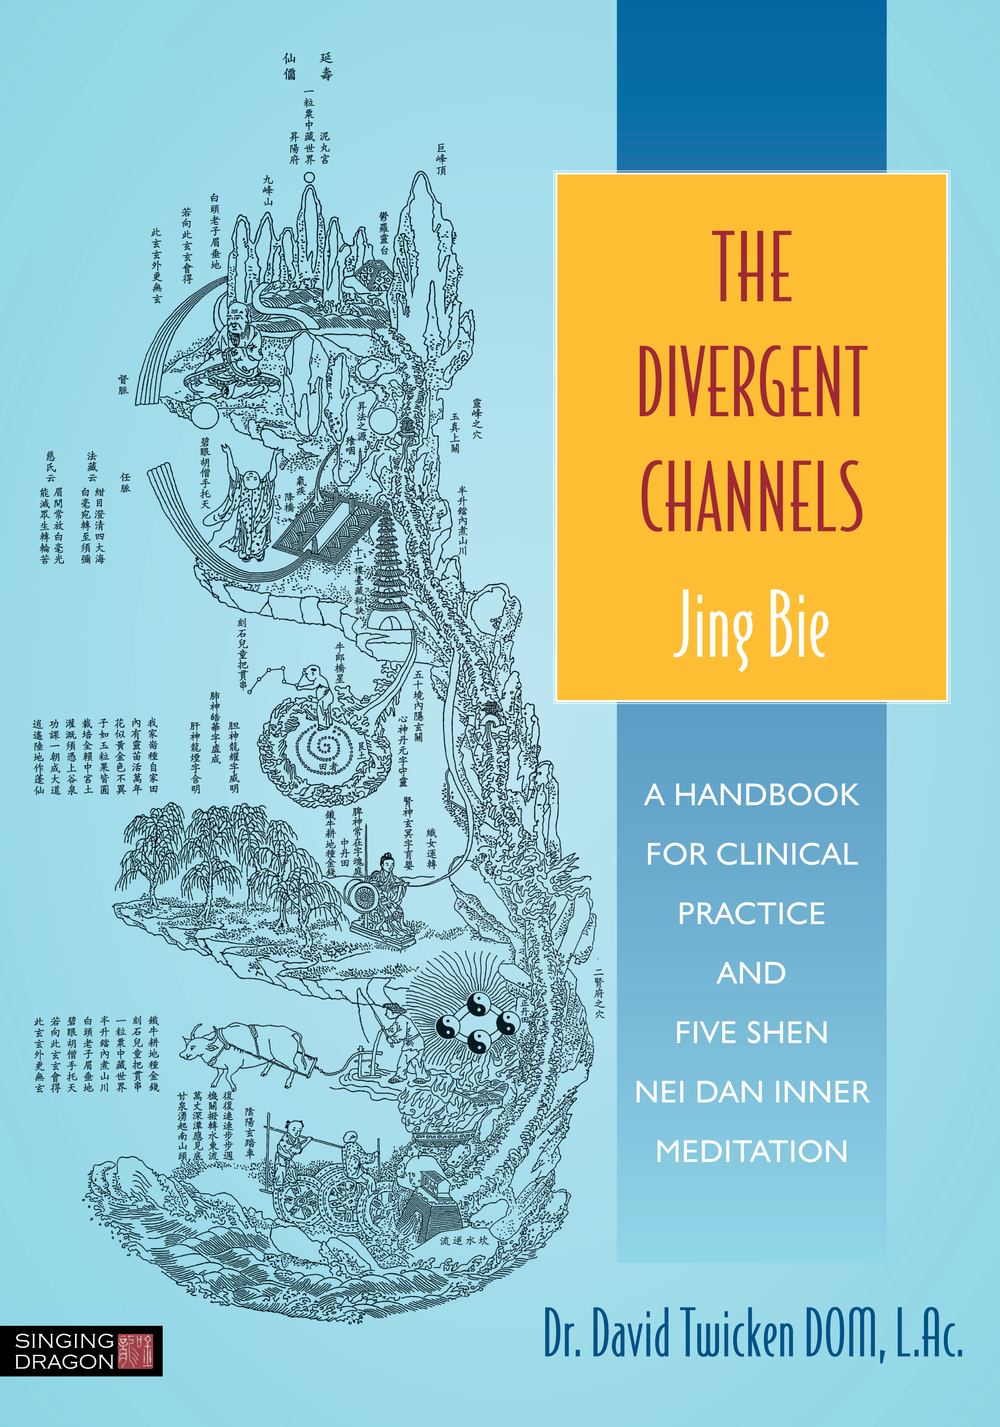 The Divergent Channels - Jing Bie A Handbook for Clinical Practice and Five Shen Nei Dan Inner Meditation